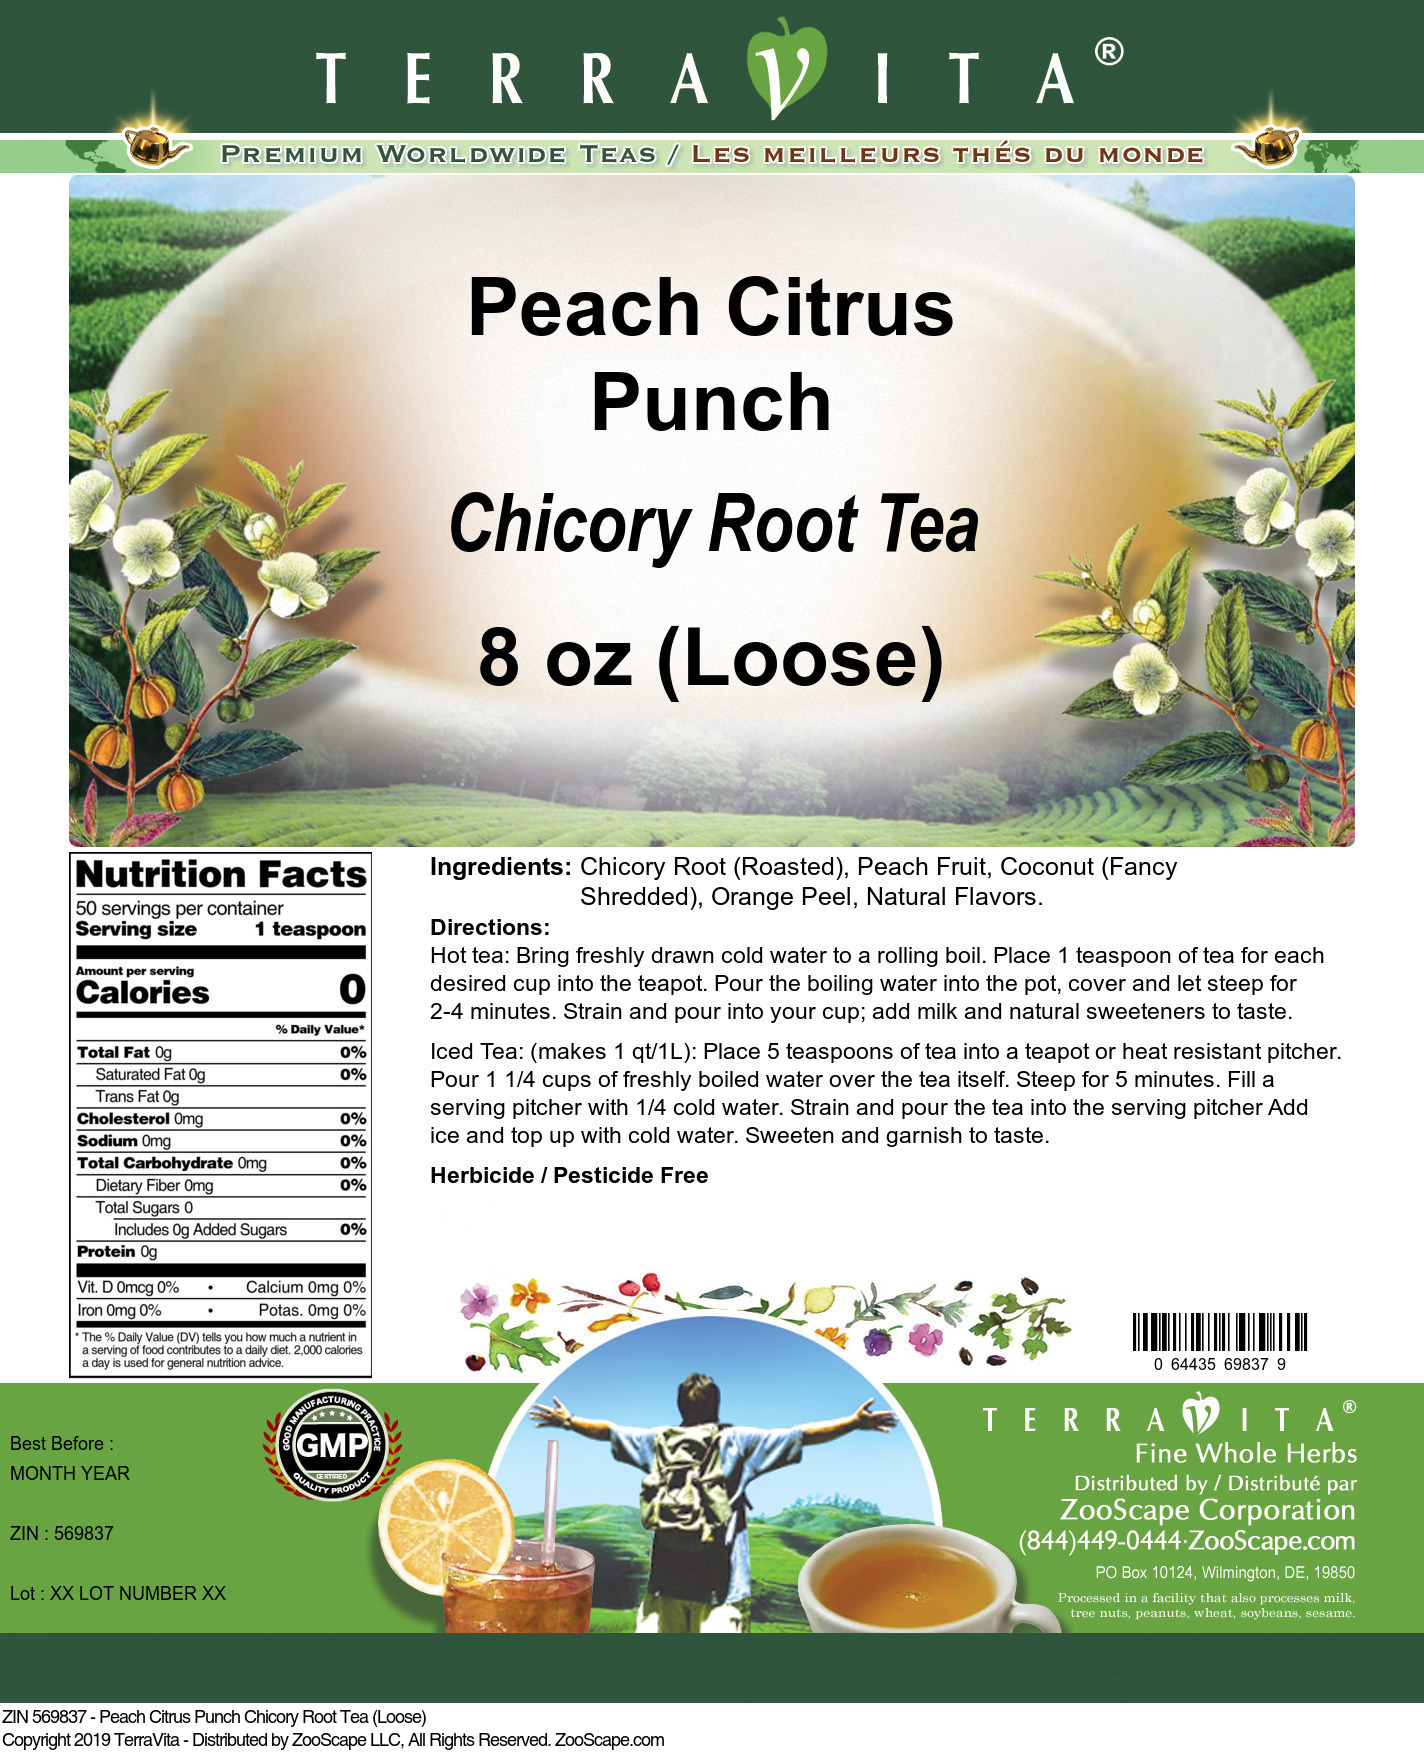 Peach Citrus Punch Chicory Root Tea (Loose)